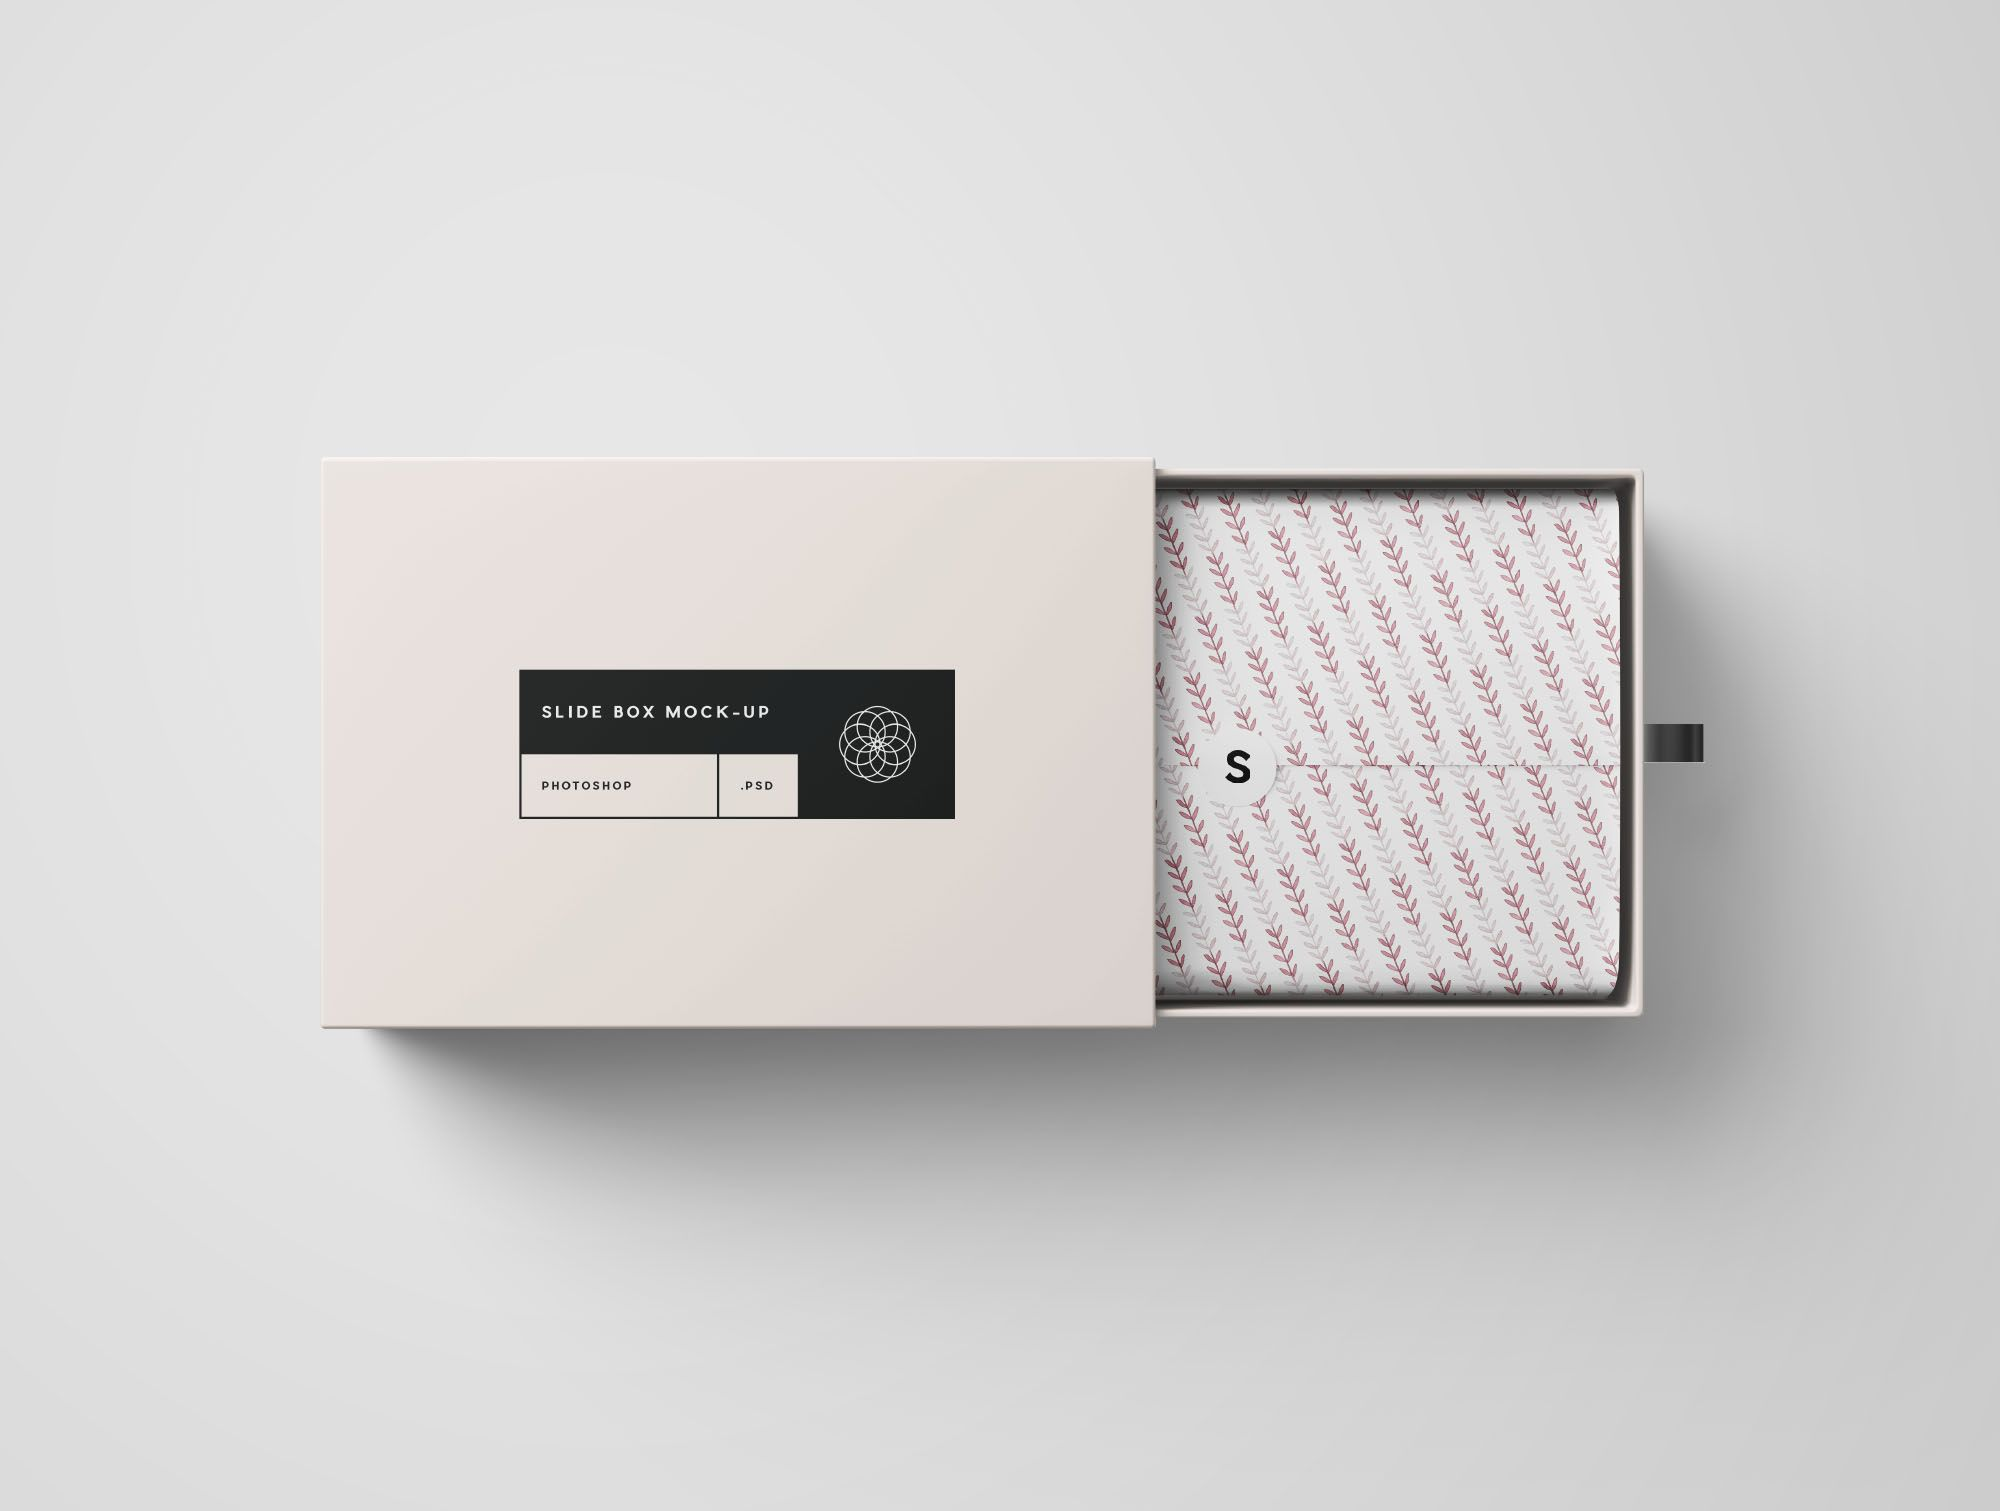 Download Opened Rectangle Slide Box Mockup Slide Box Free Packaging Mockup Box Mockup